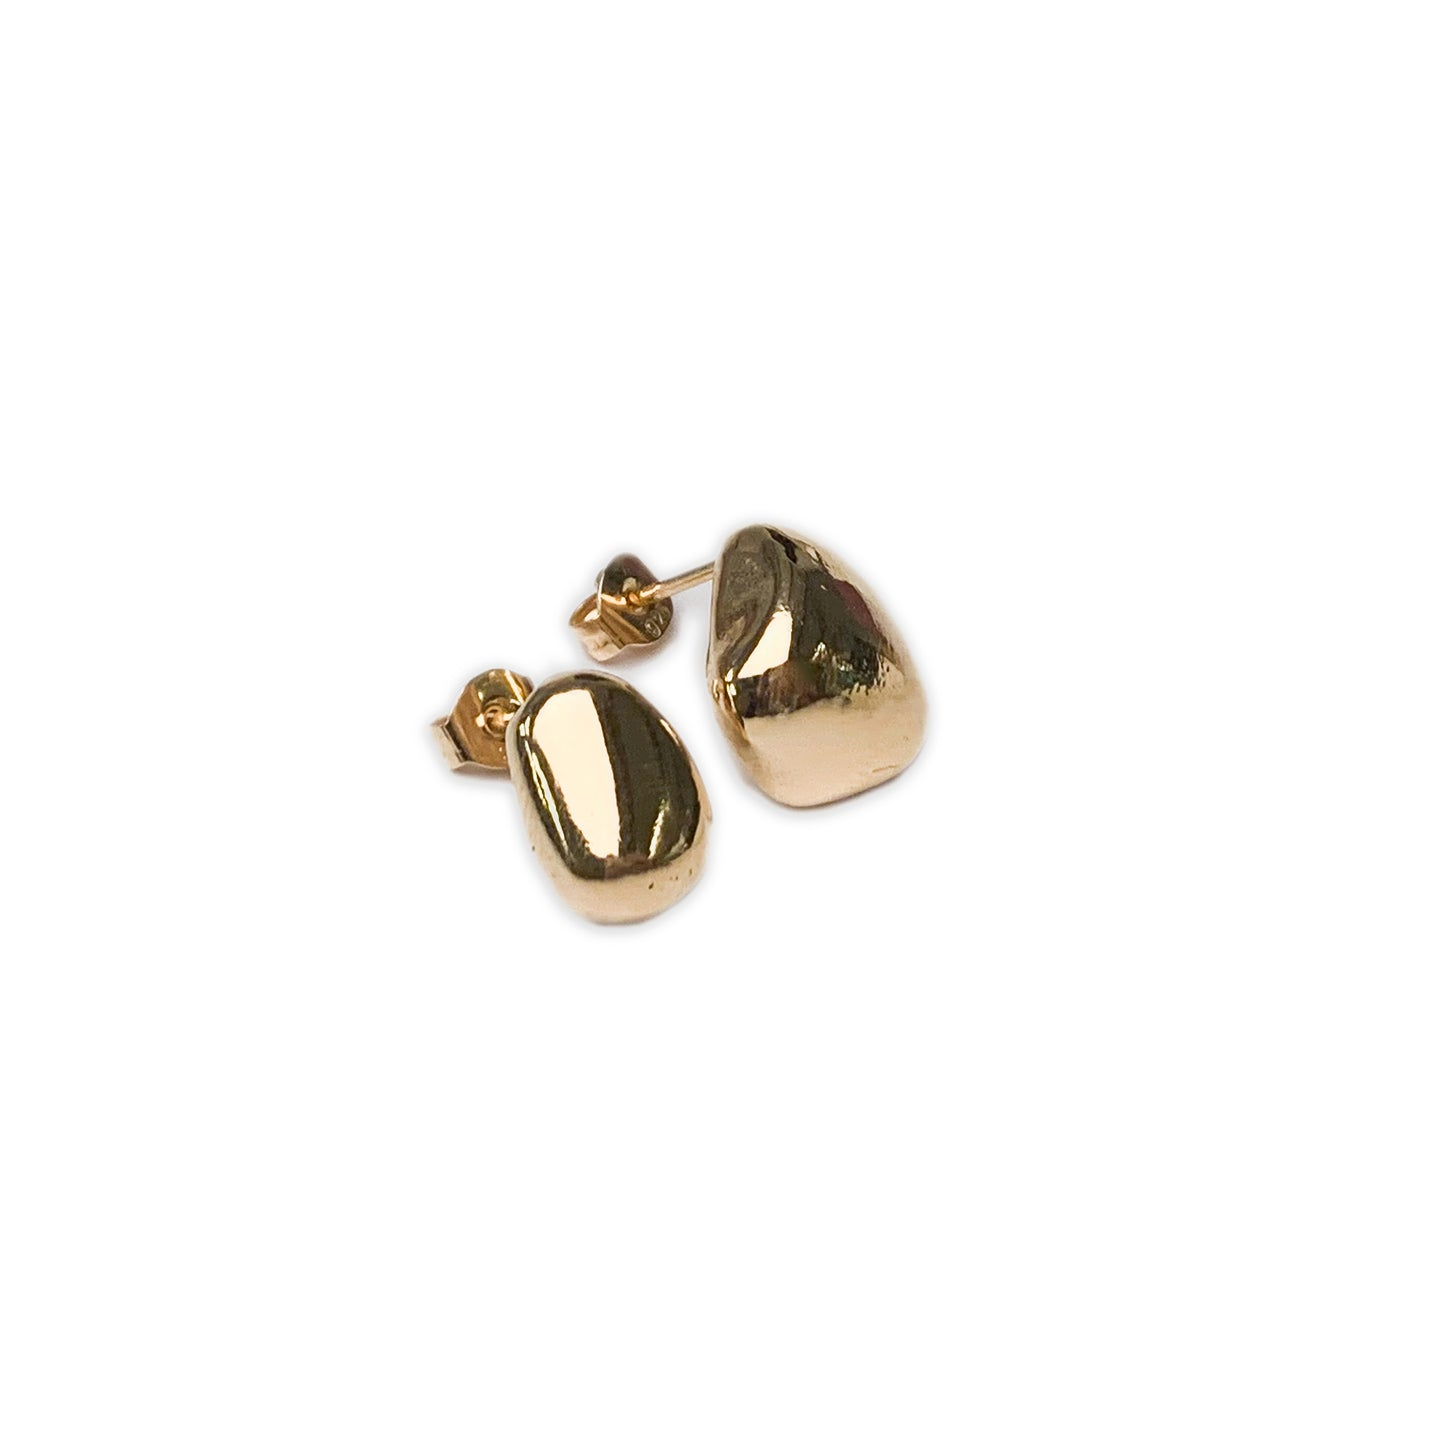 Martine Viergever - Earring - Rolling stones - gold